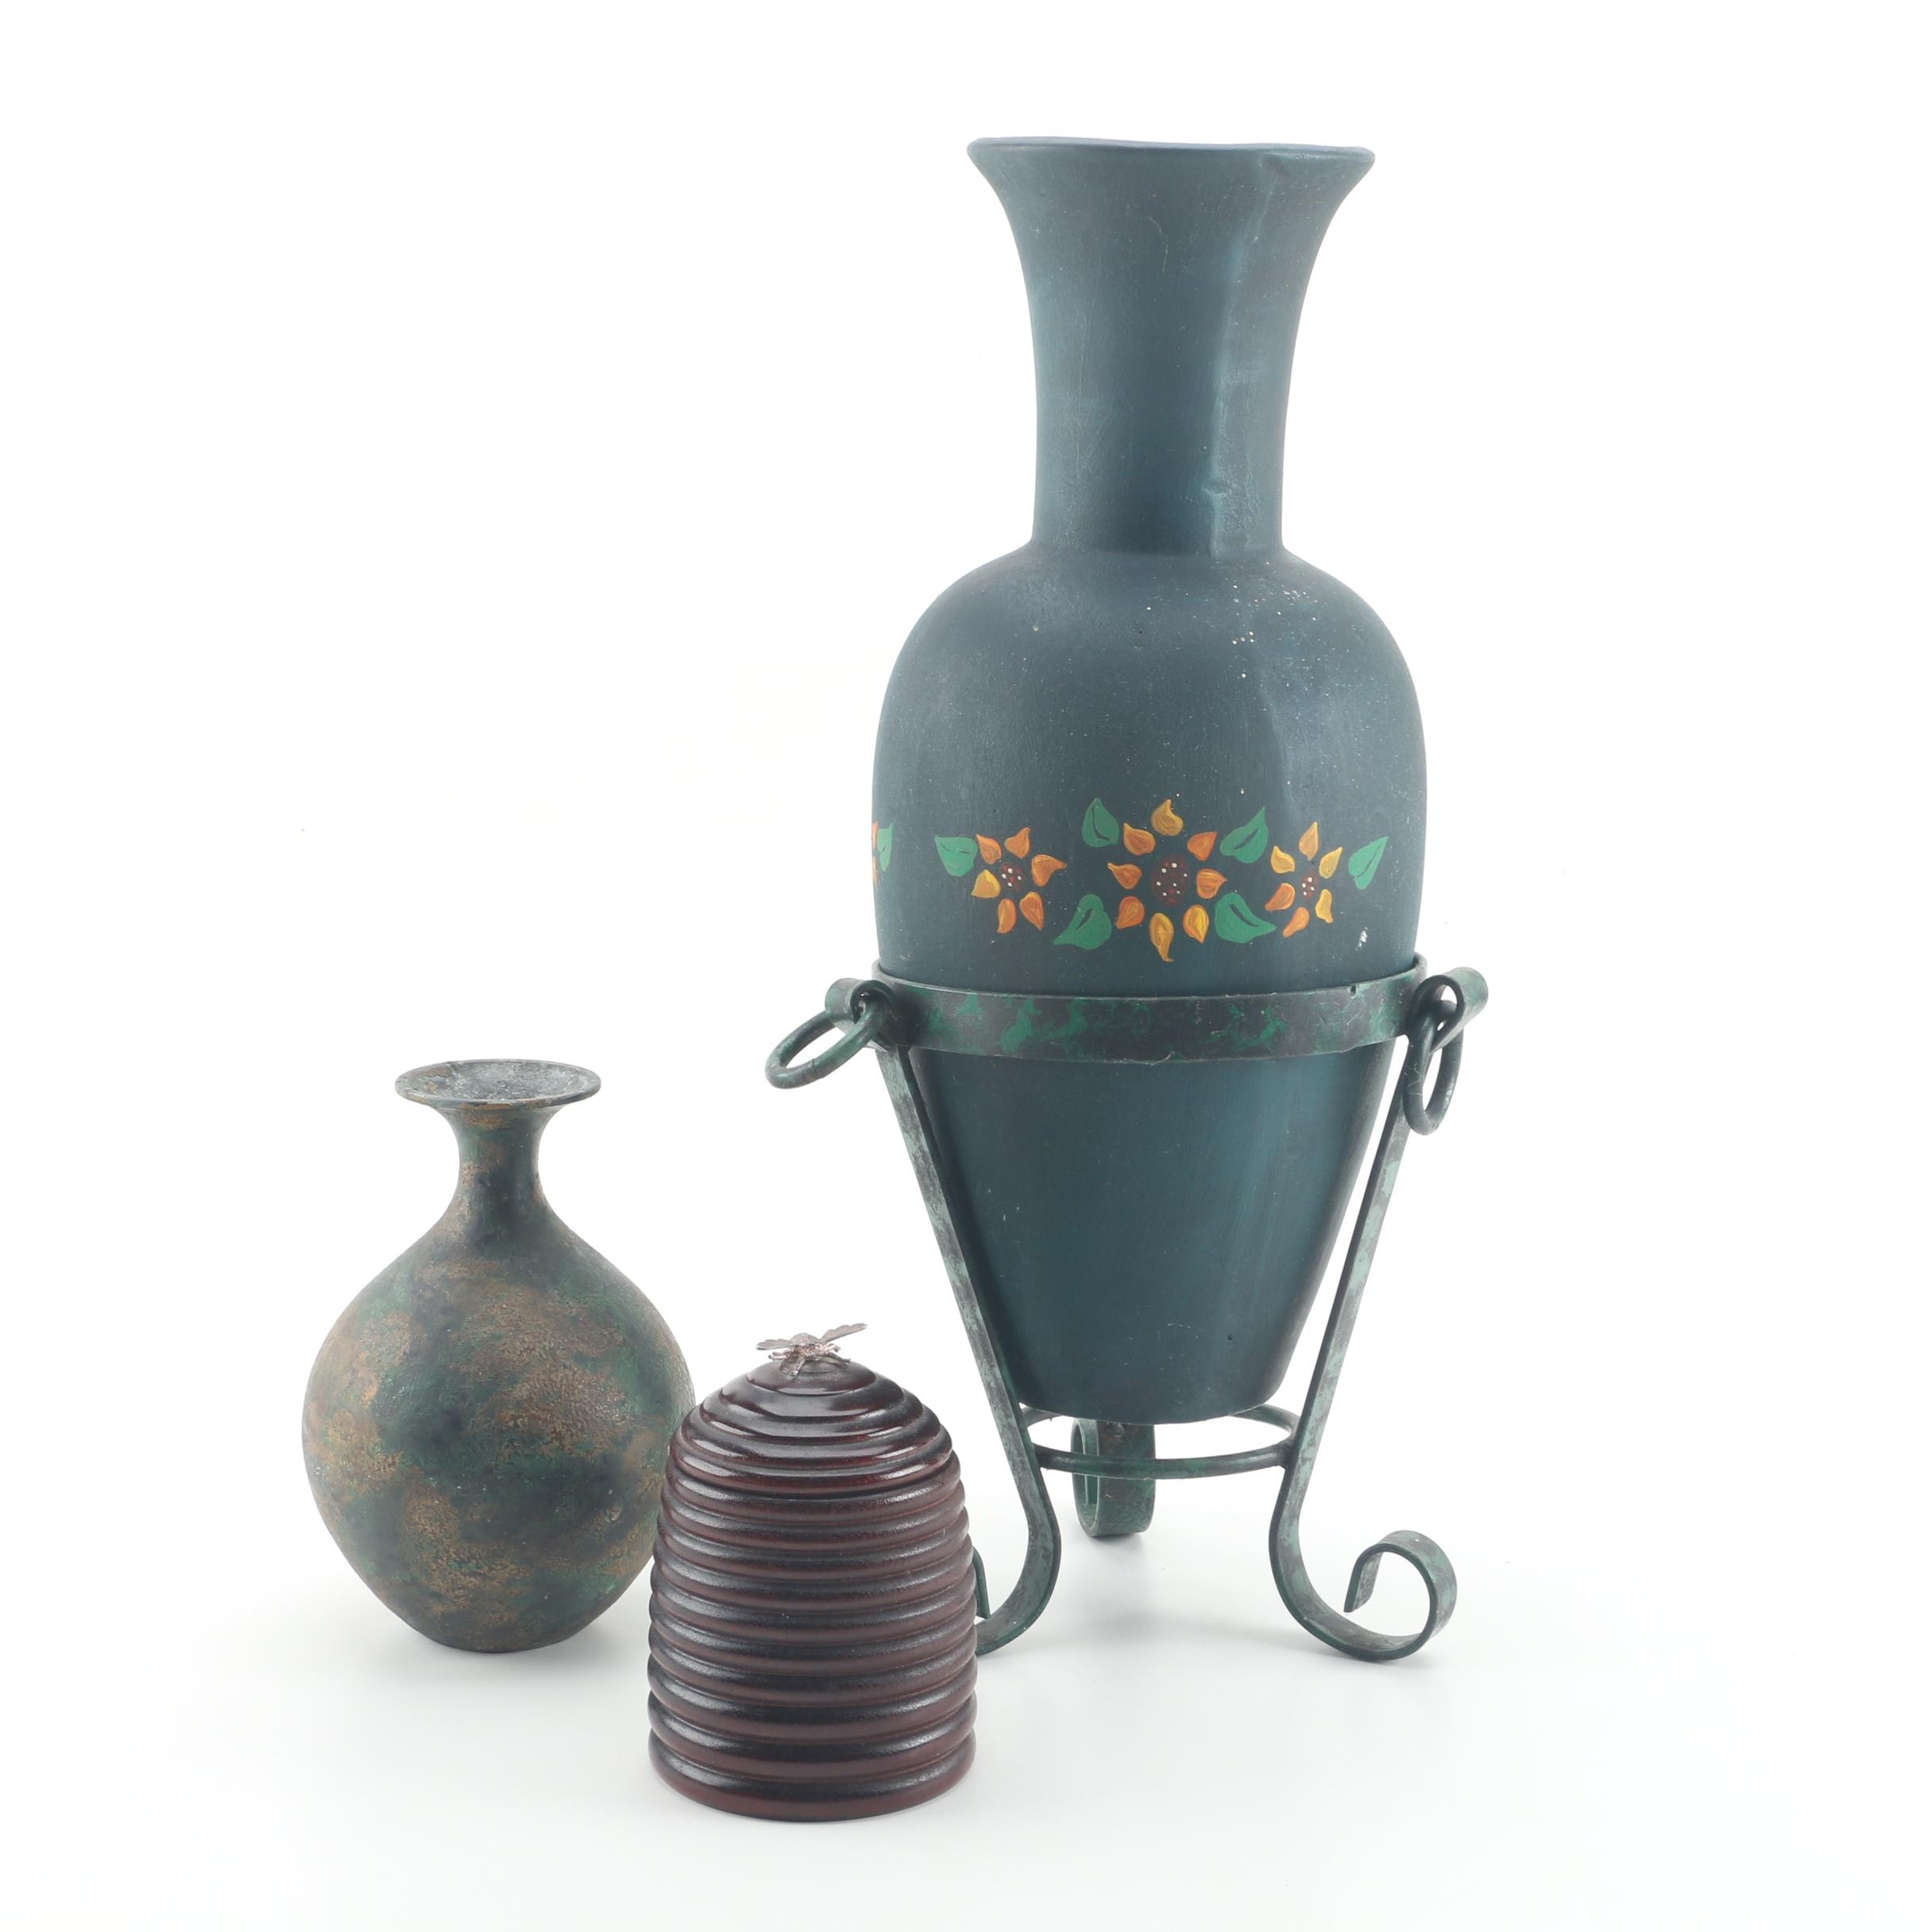 Hand-Painted Pottery and Home Decor